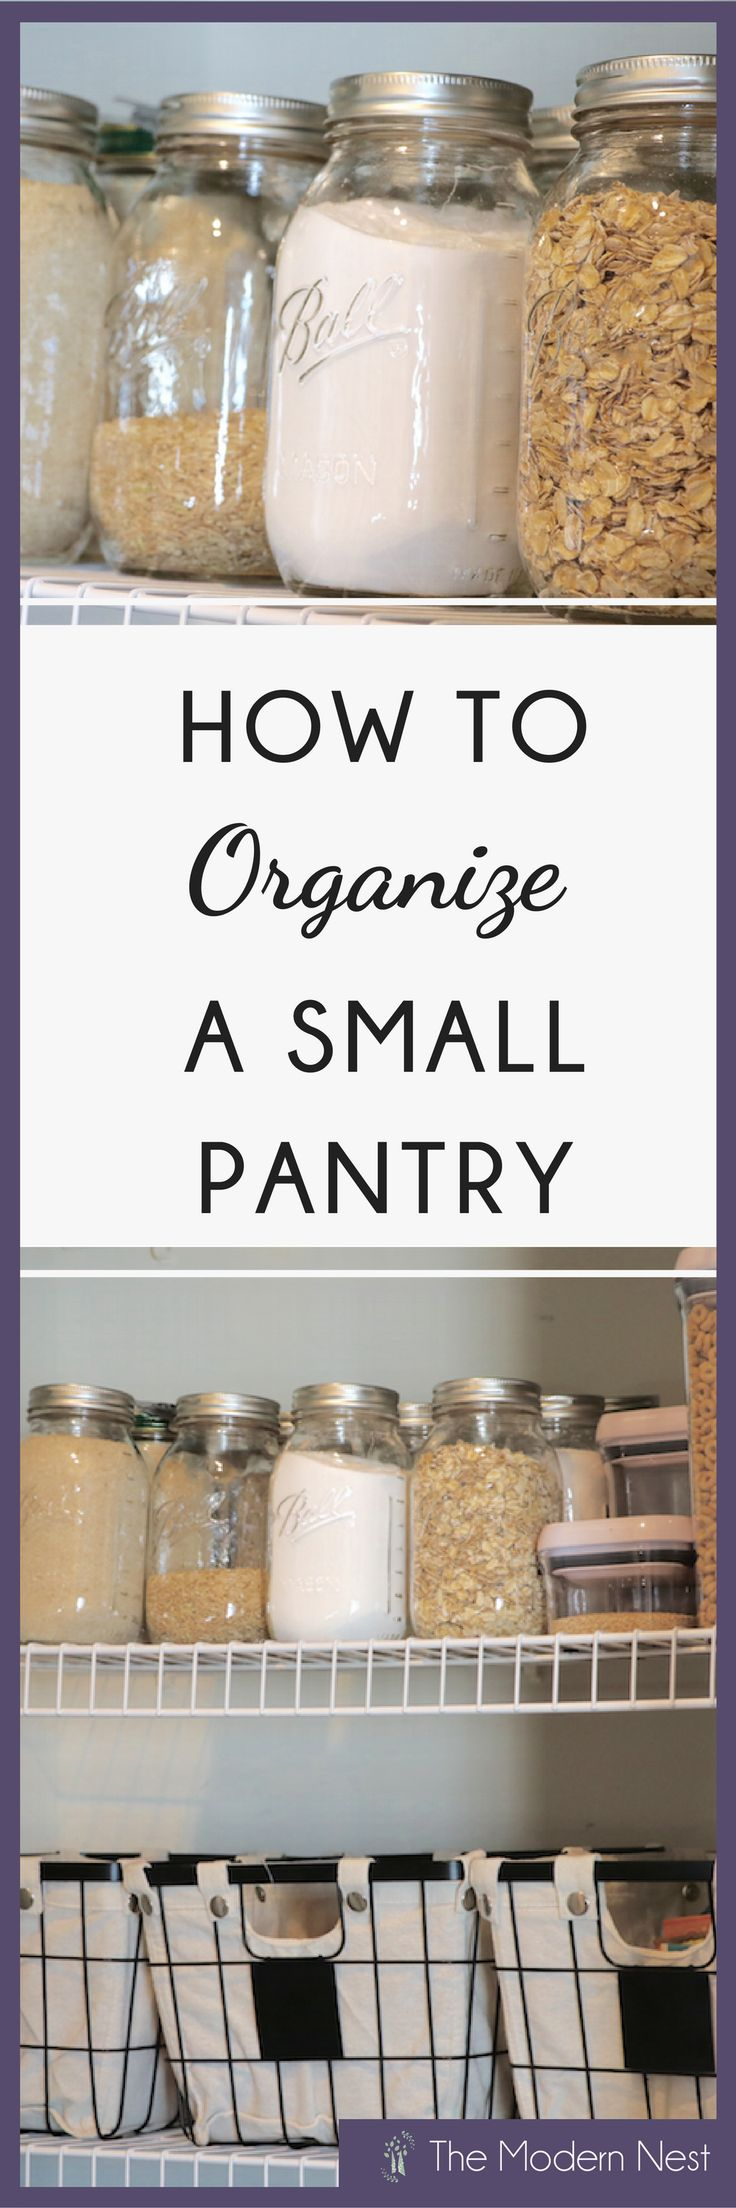 Learn how to organize a small pantry! If you find yourself struggling to find space to put your food when you go grocery shopping then this post is for you! Learn more at https://www.themodernnestblog.com/archives/1387